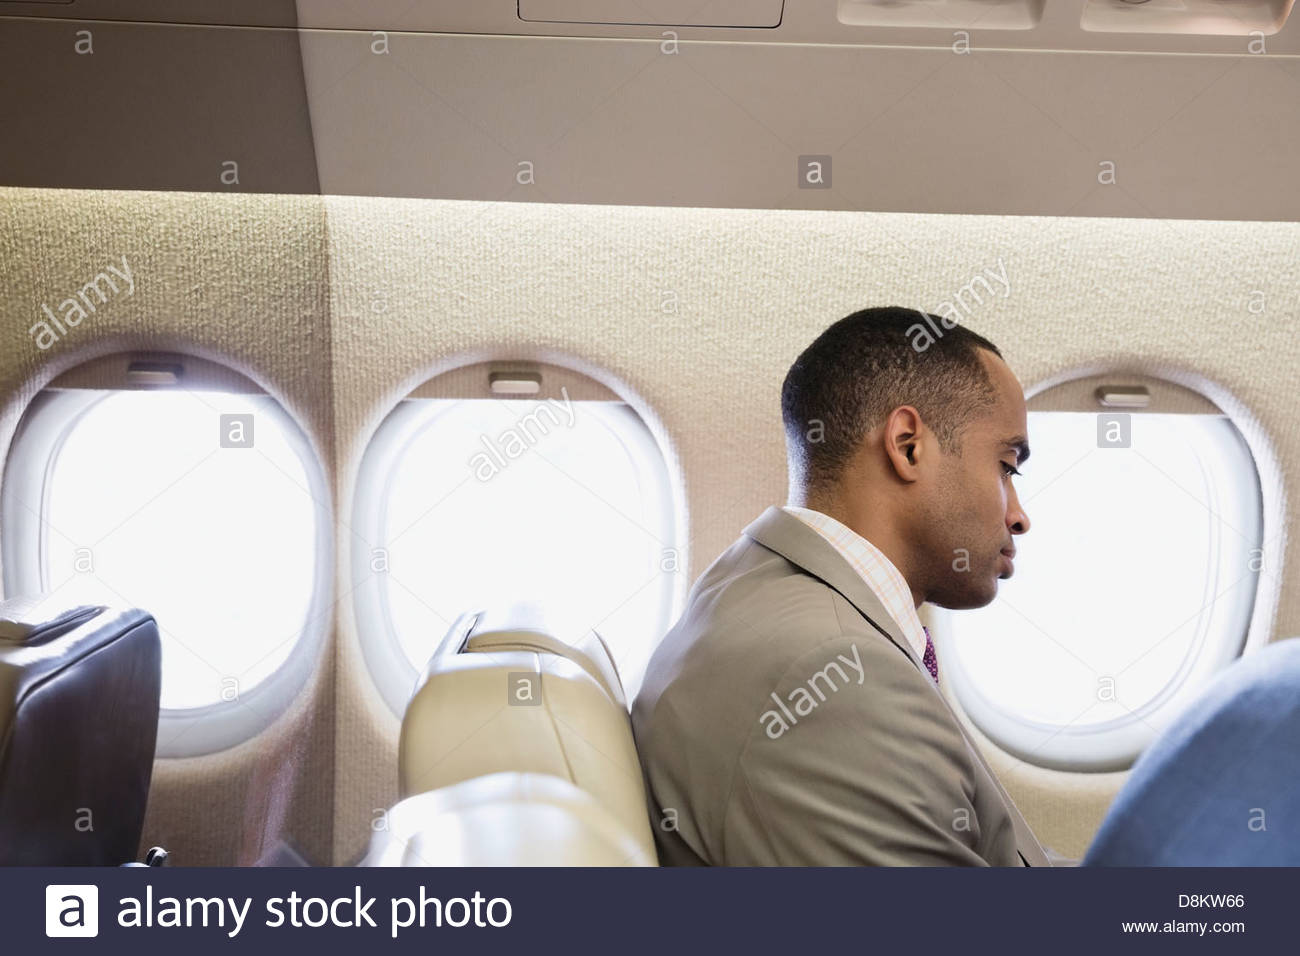 Businessman traveling in airplane - Stock Image